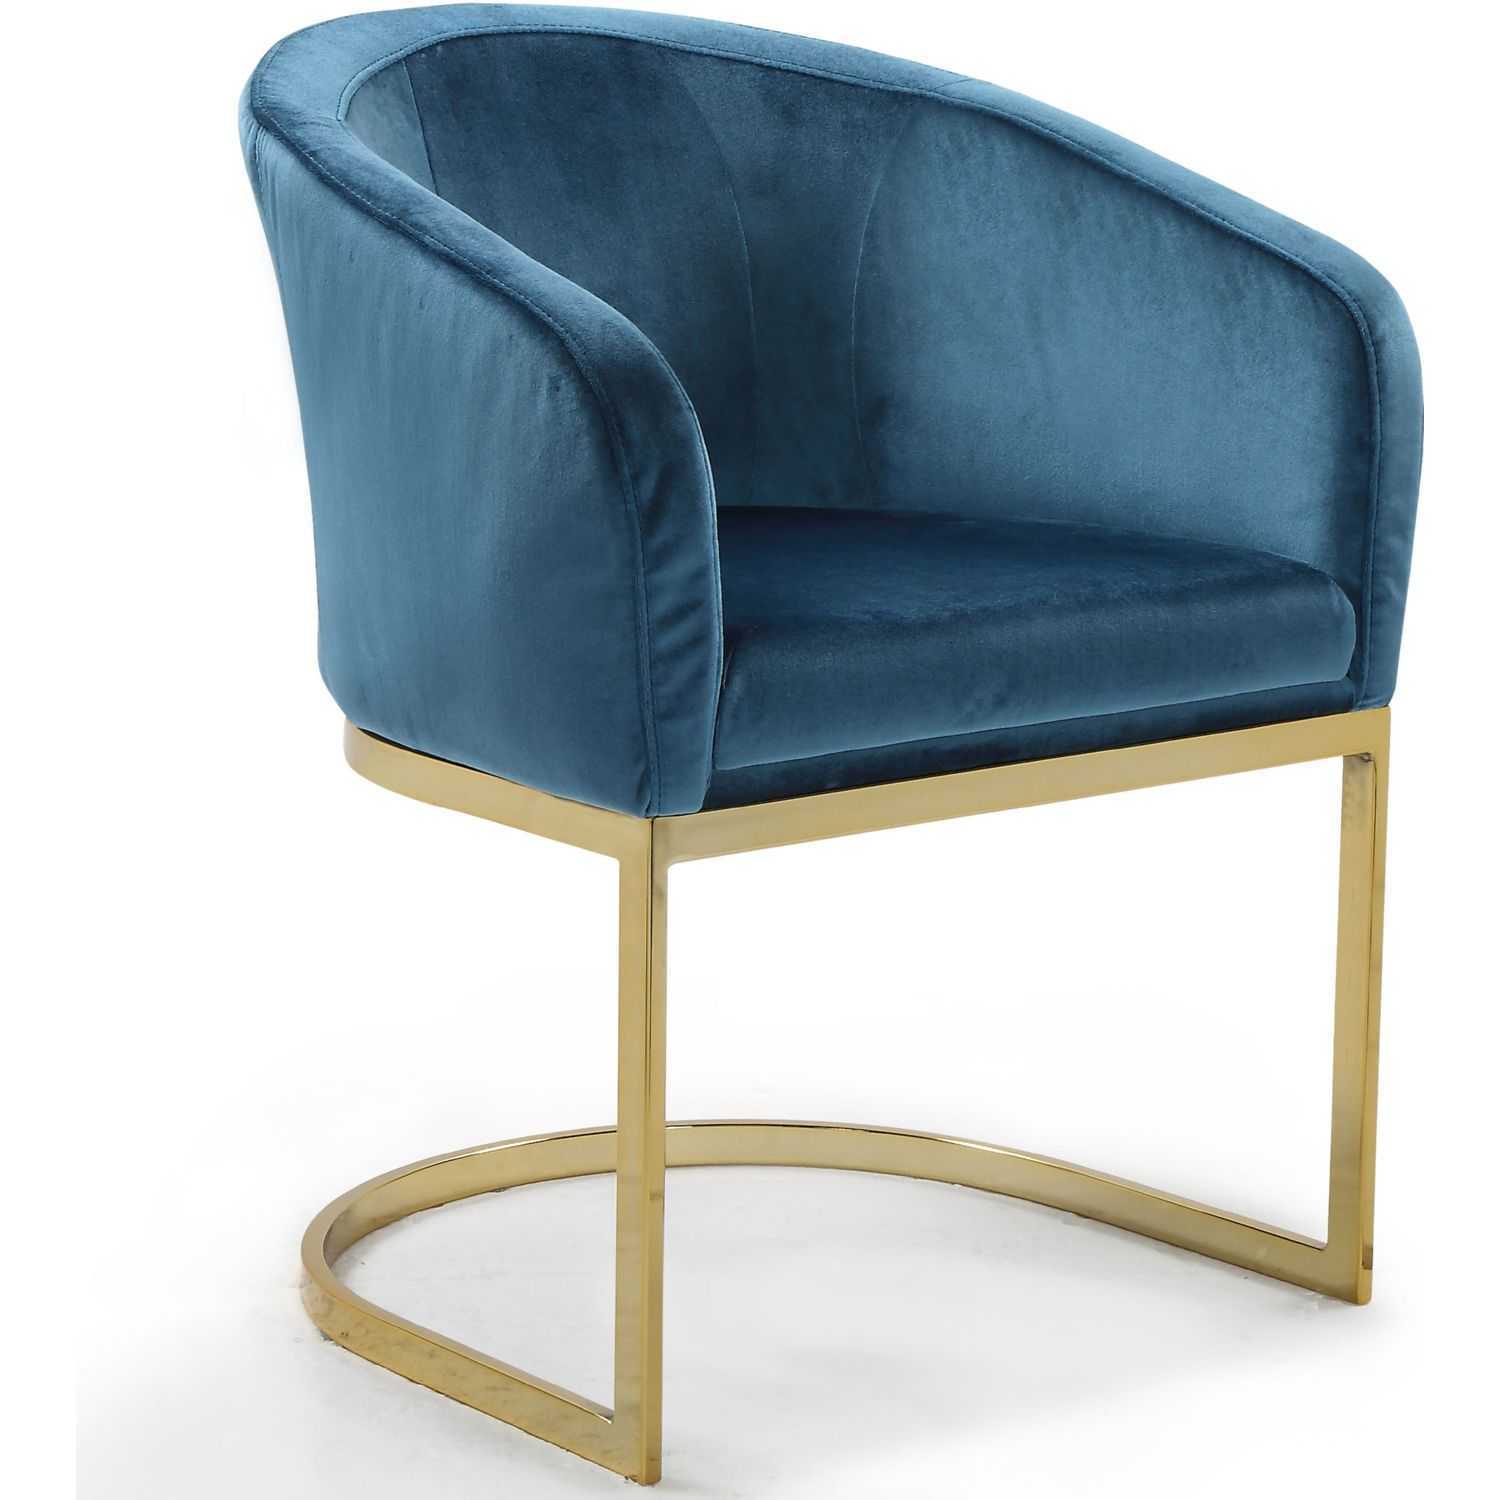 Chic Iconic Siena Accent Chair Teal Velvet Gold Metal Base